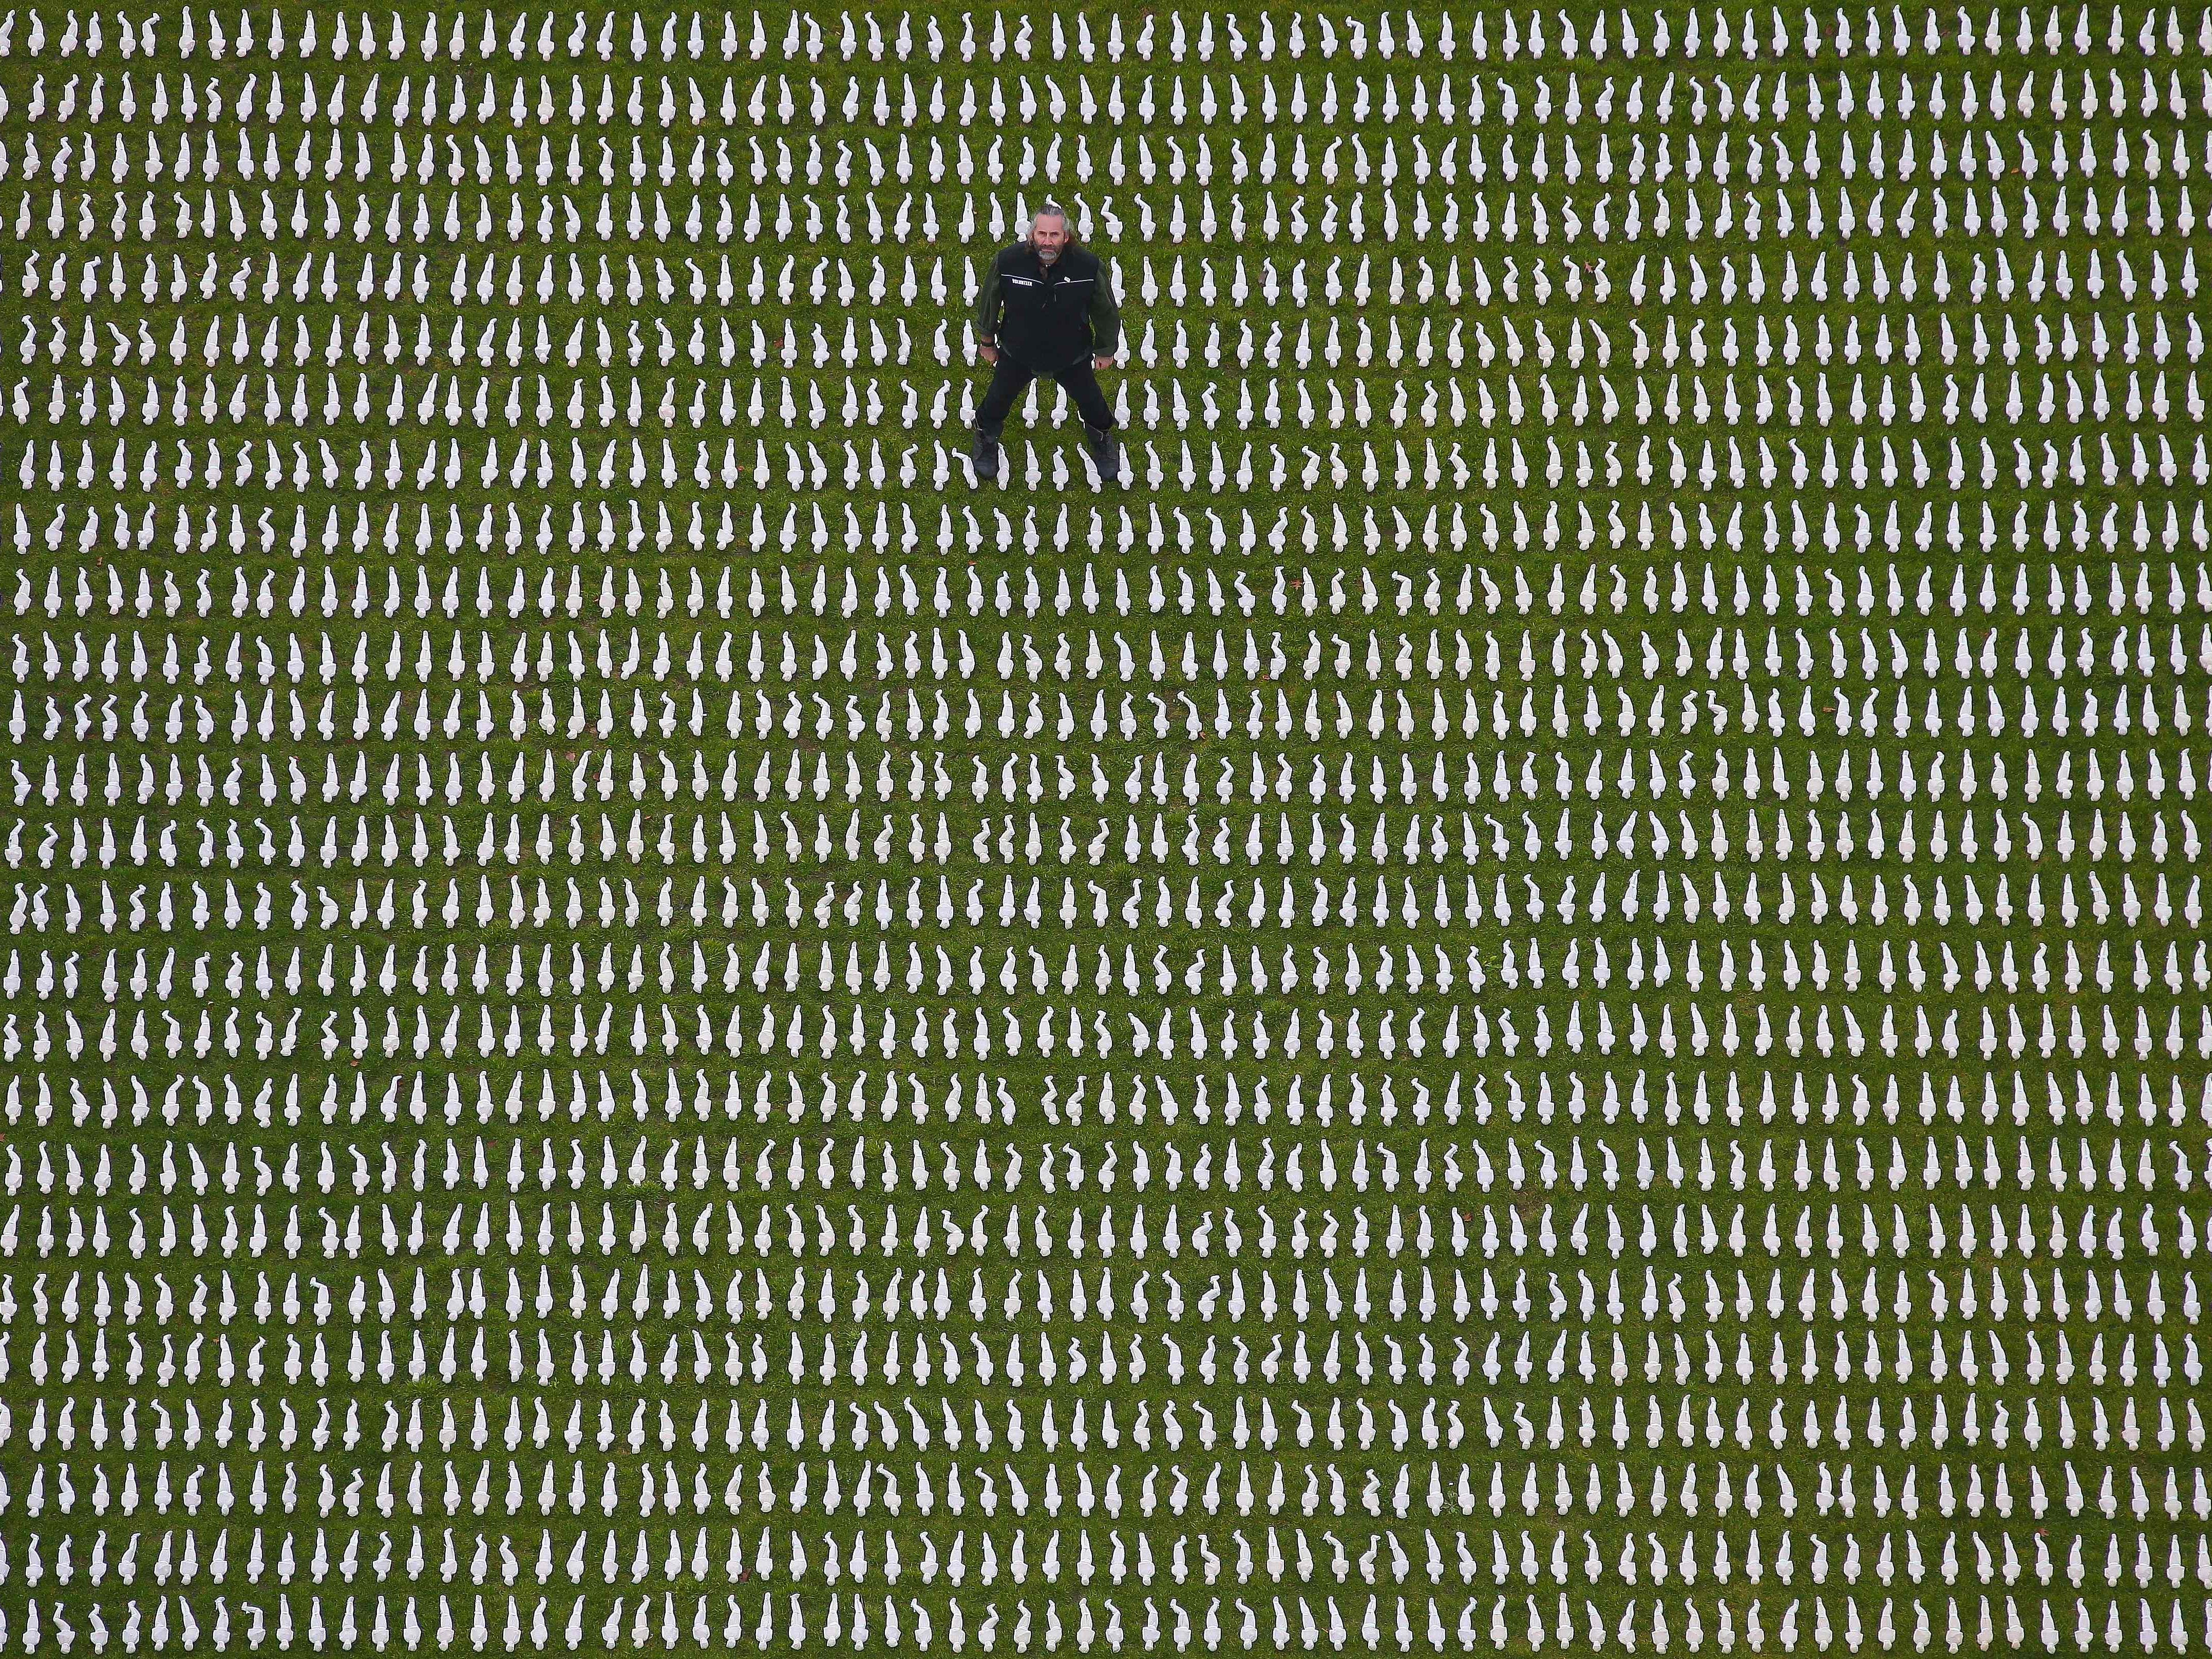 "British artist Rob Heard poses for a photograph amongst 72,396 shrouded figures, which form his installation ""Shrouds of the Somme"", laid out at the Queen Elizabeth Olympic Park in London on November 7, 2018, to represent Commonwealth servicemen who died at the Somme, and who have no known grave. - The 12 inch shrouded figures have been laid out by volunteers and members of the British Army's 1 Royal Anglian Regiment to mark the 100th anniversary of the end of the First World War. (Photo by Daniel LEAL-OLIVAS / AFP) / RESTRICTED TO EDITORIAL USE - MANDATORY MENTION OF THE ARTIST UPON PUBLICATION - TO ILLUSTRATE THE EVENT AS SPECIFIED IN THE CAPTIONDANIEL LEAL-OLIVAS/AFP/Getty Images ORIG FILE ID: AFP_1AN232"